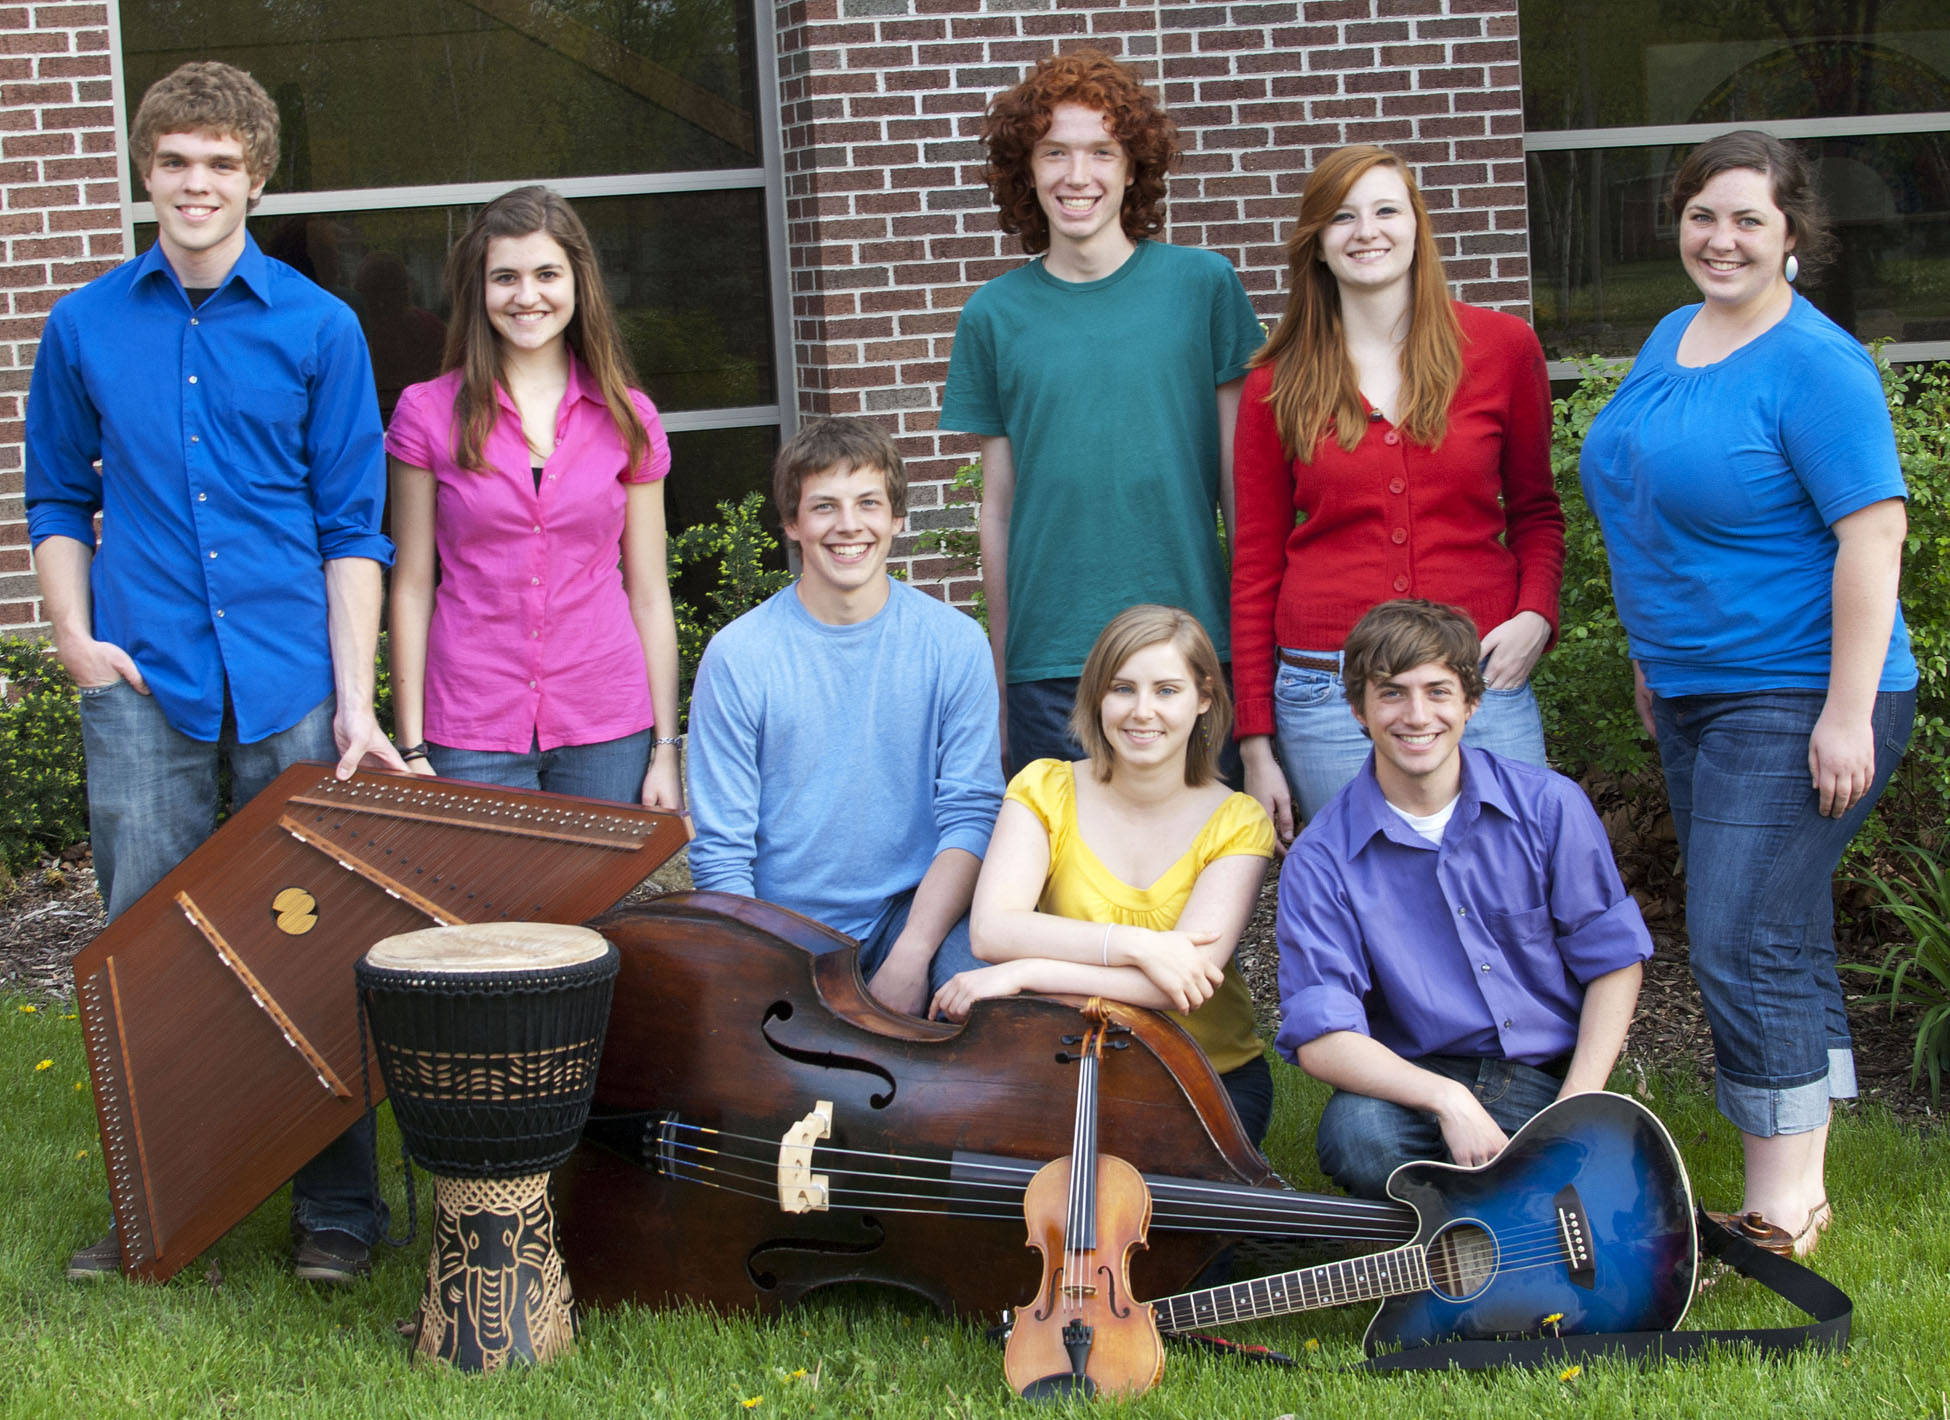 Members of Parables pose for a picture with their instruments outside the Music Center